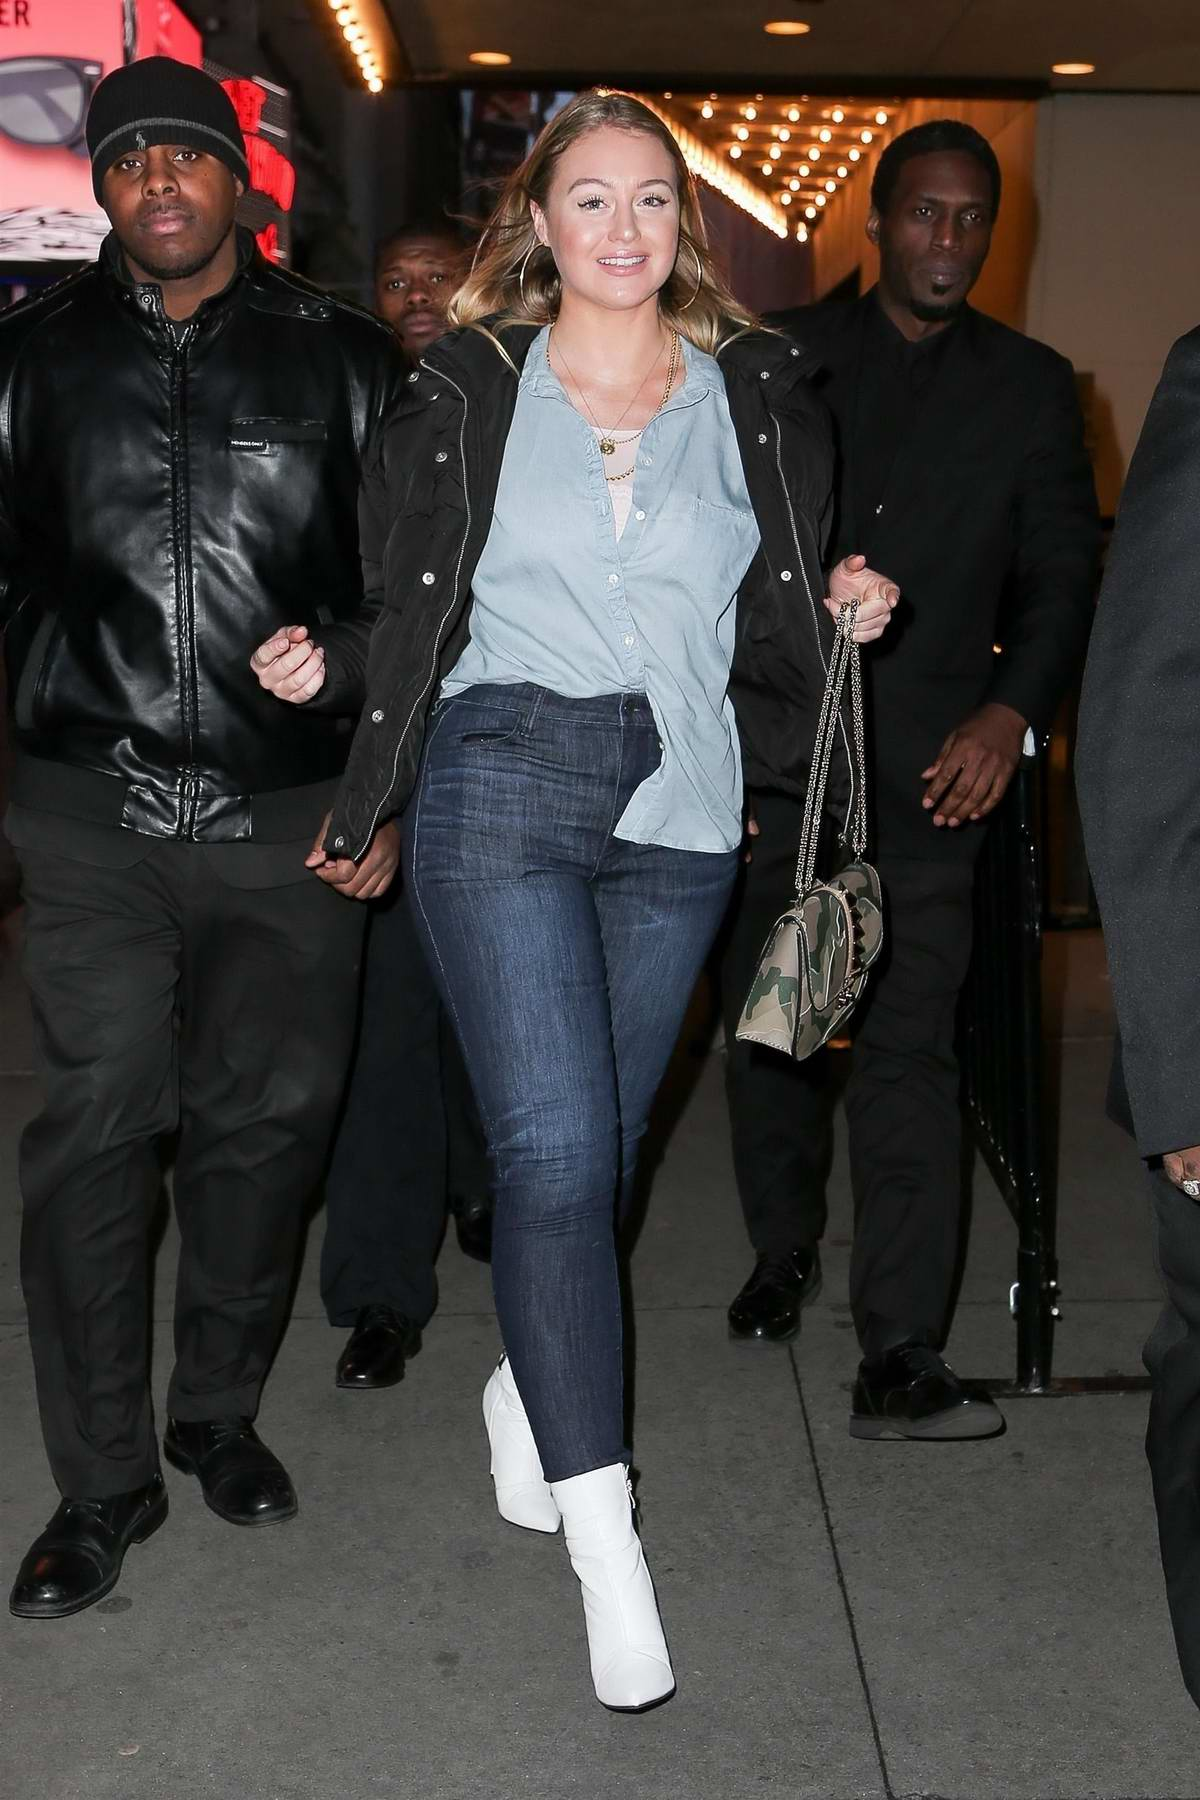 Iskra Lawrence smiles for the cameras as she leaves the TRL Studios in New York City